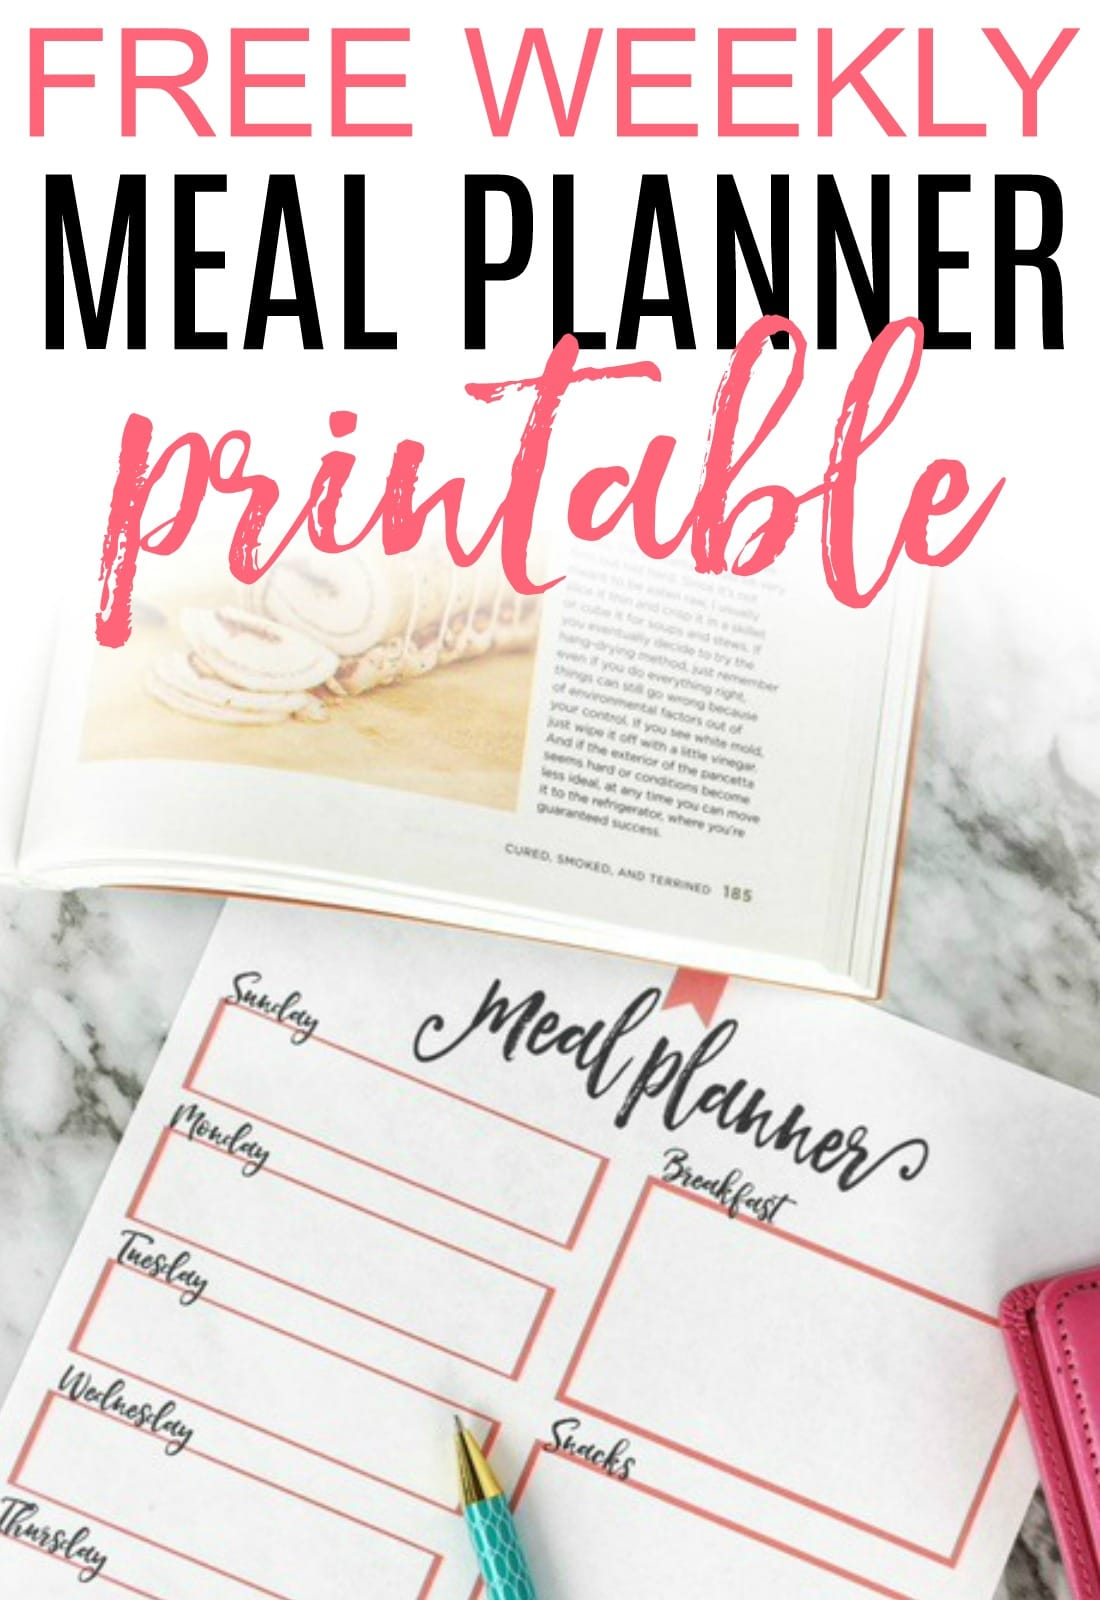 Tired of frantic evenings? Get a free weekly meal planner printable and start planning. You will save time and money. Free up your evenings again with this easy meal plan printable.